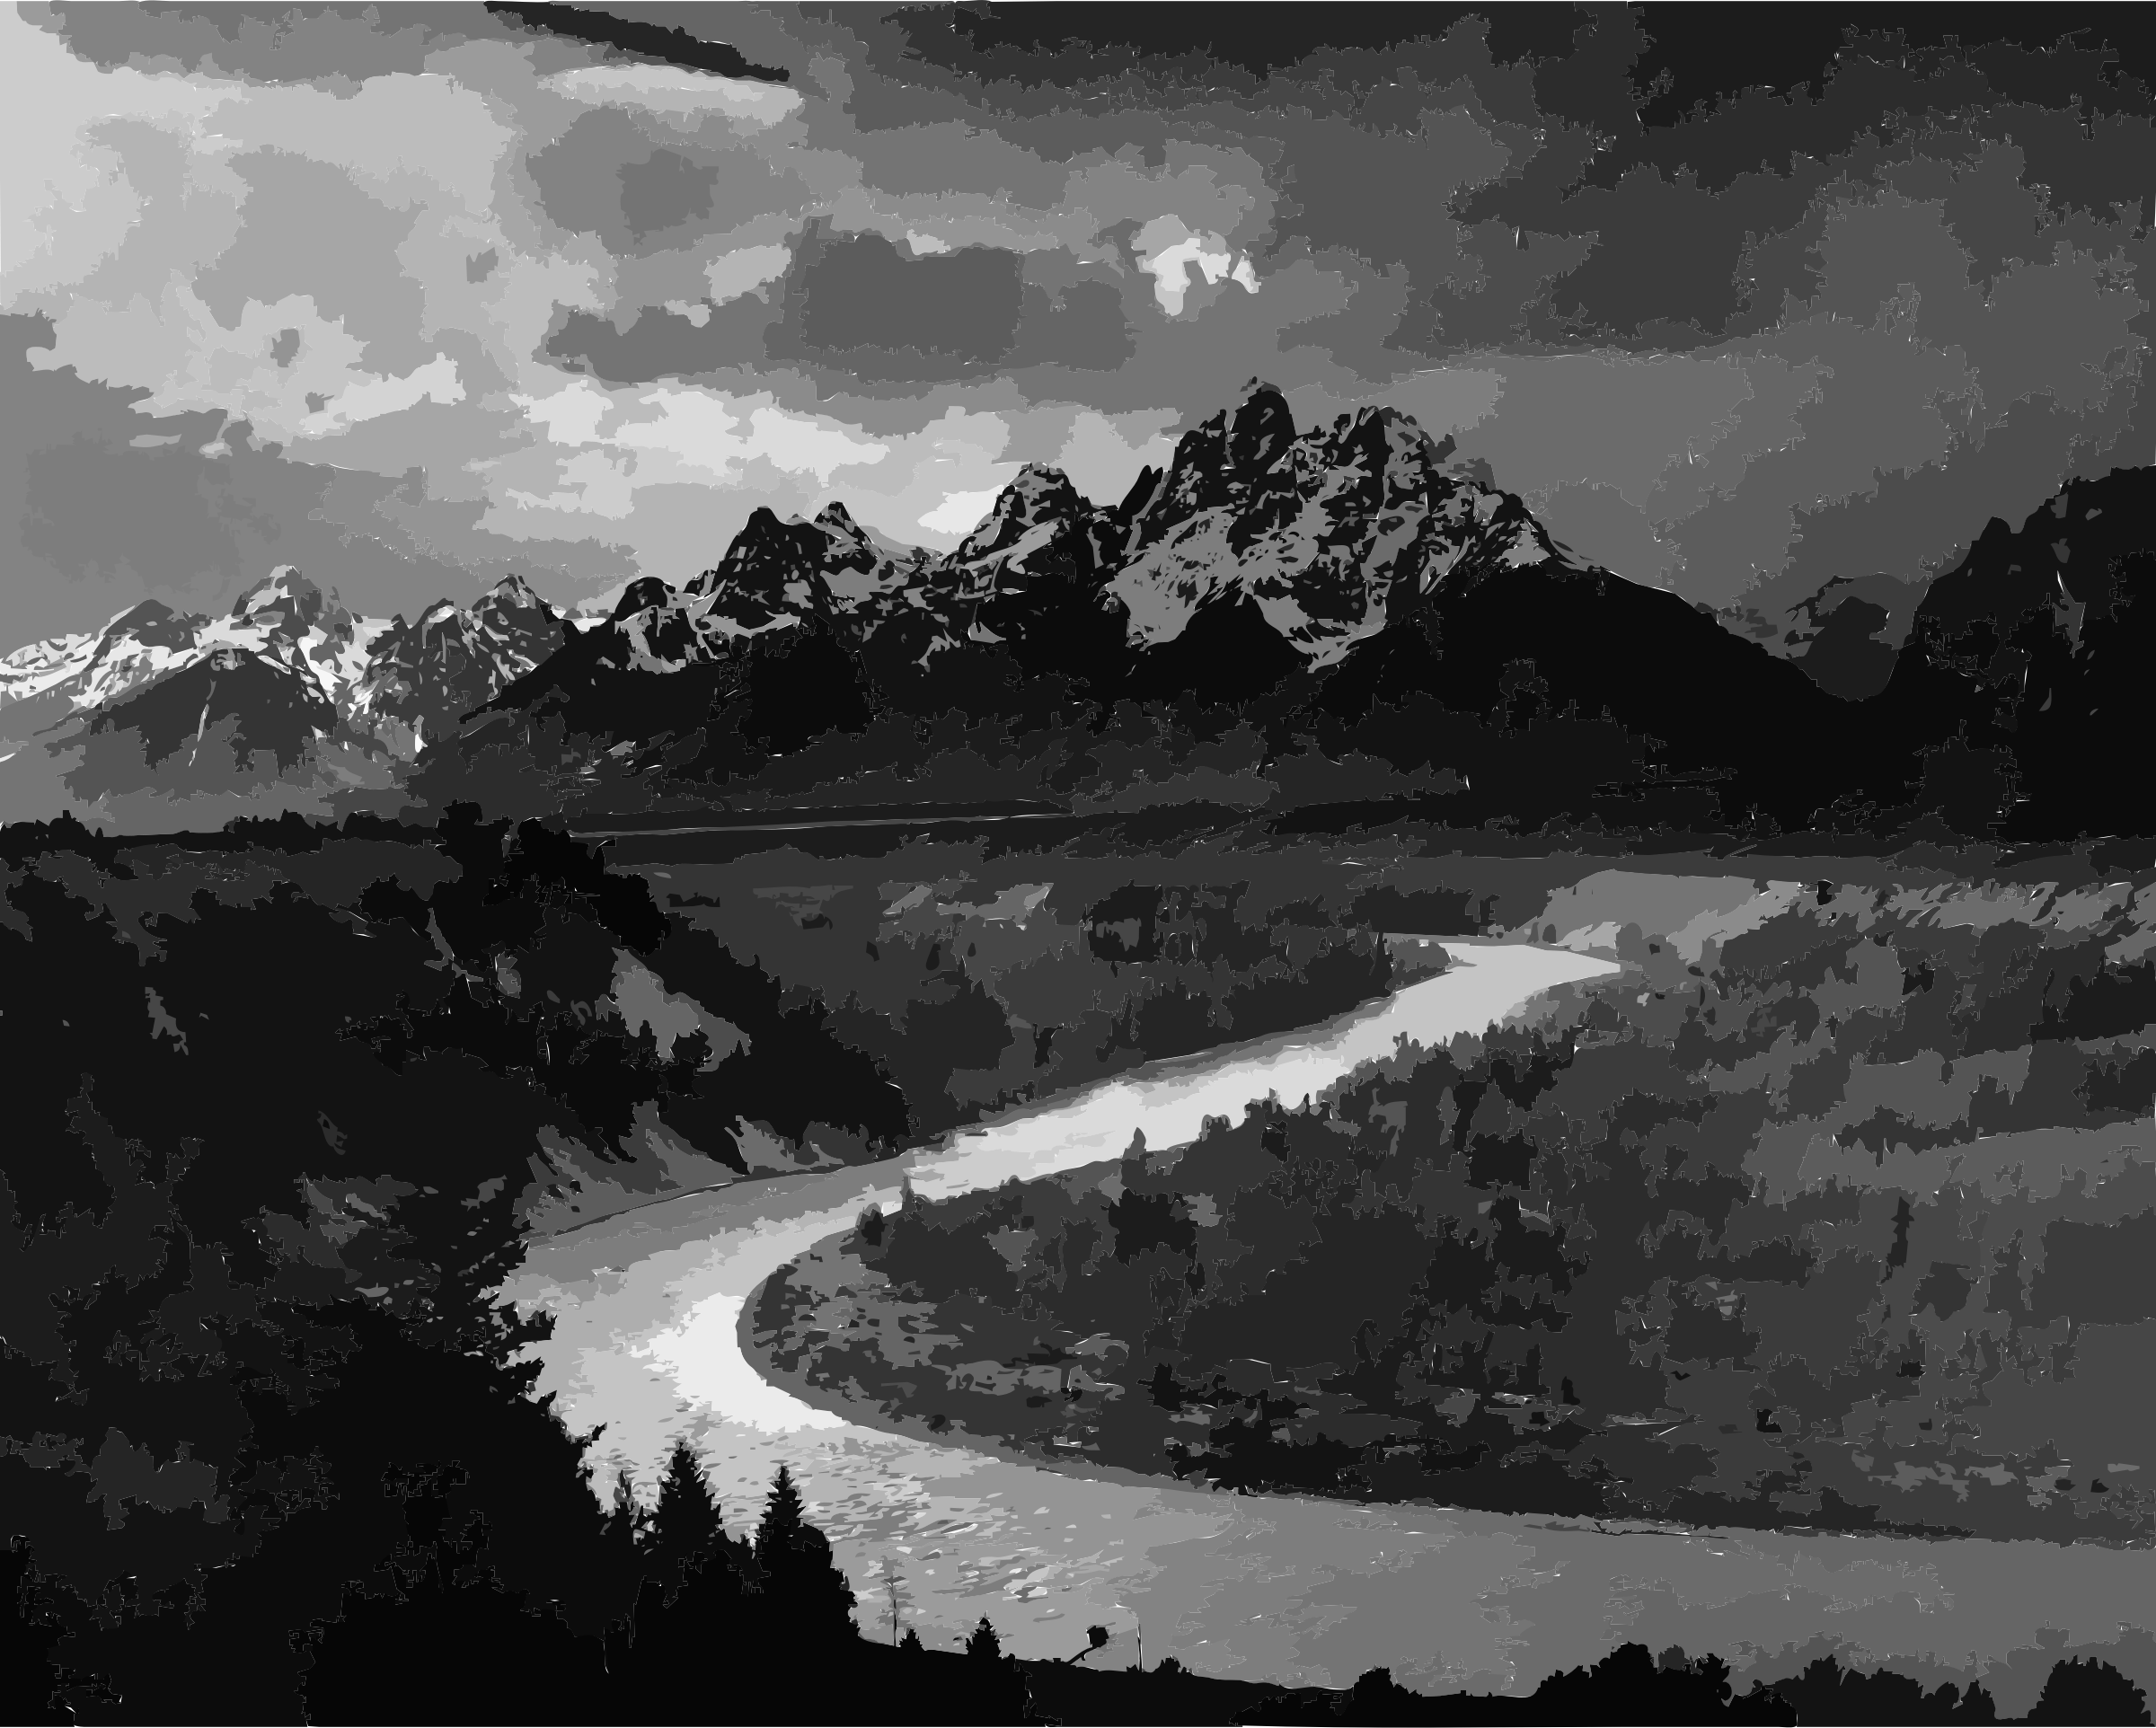 Adams The Tetons and the Snake River by 5n7epj+9741chlinrj78